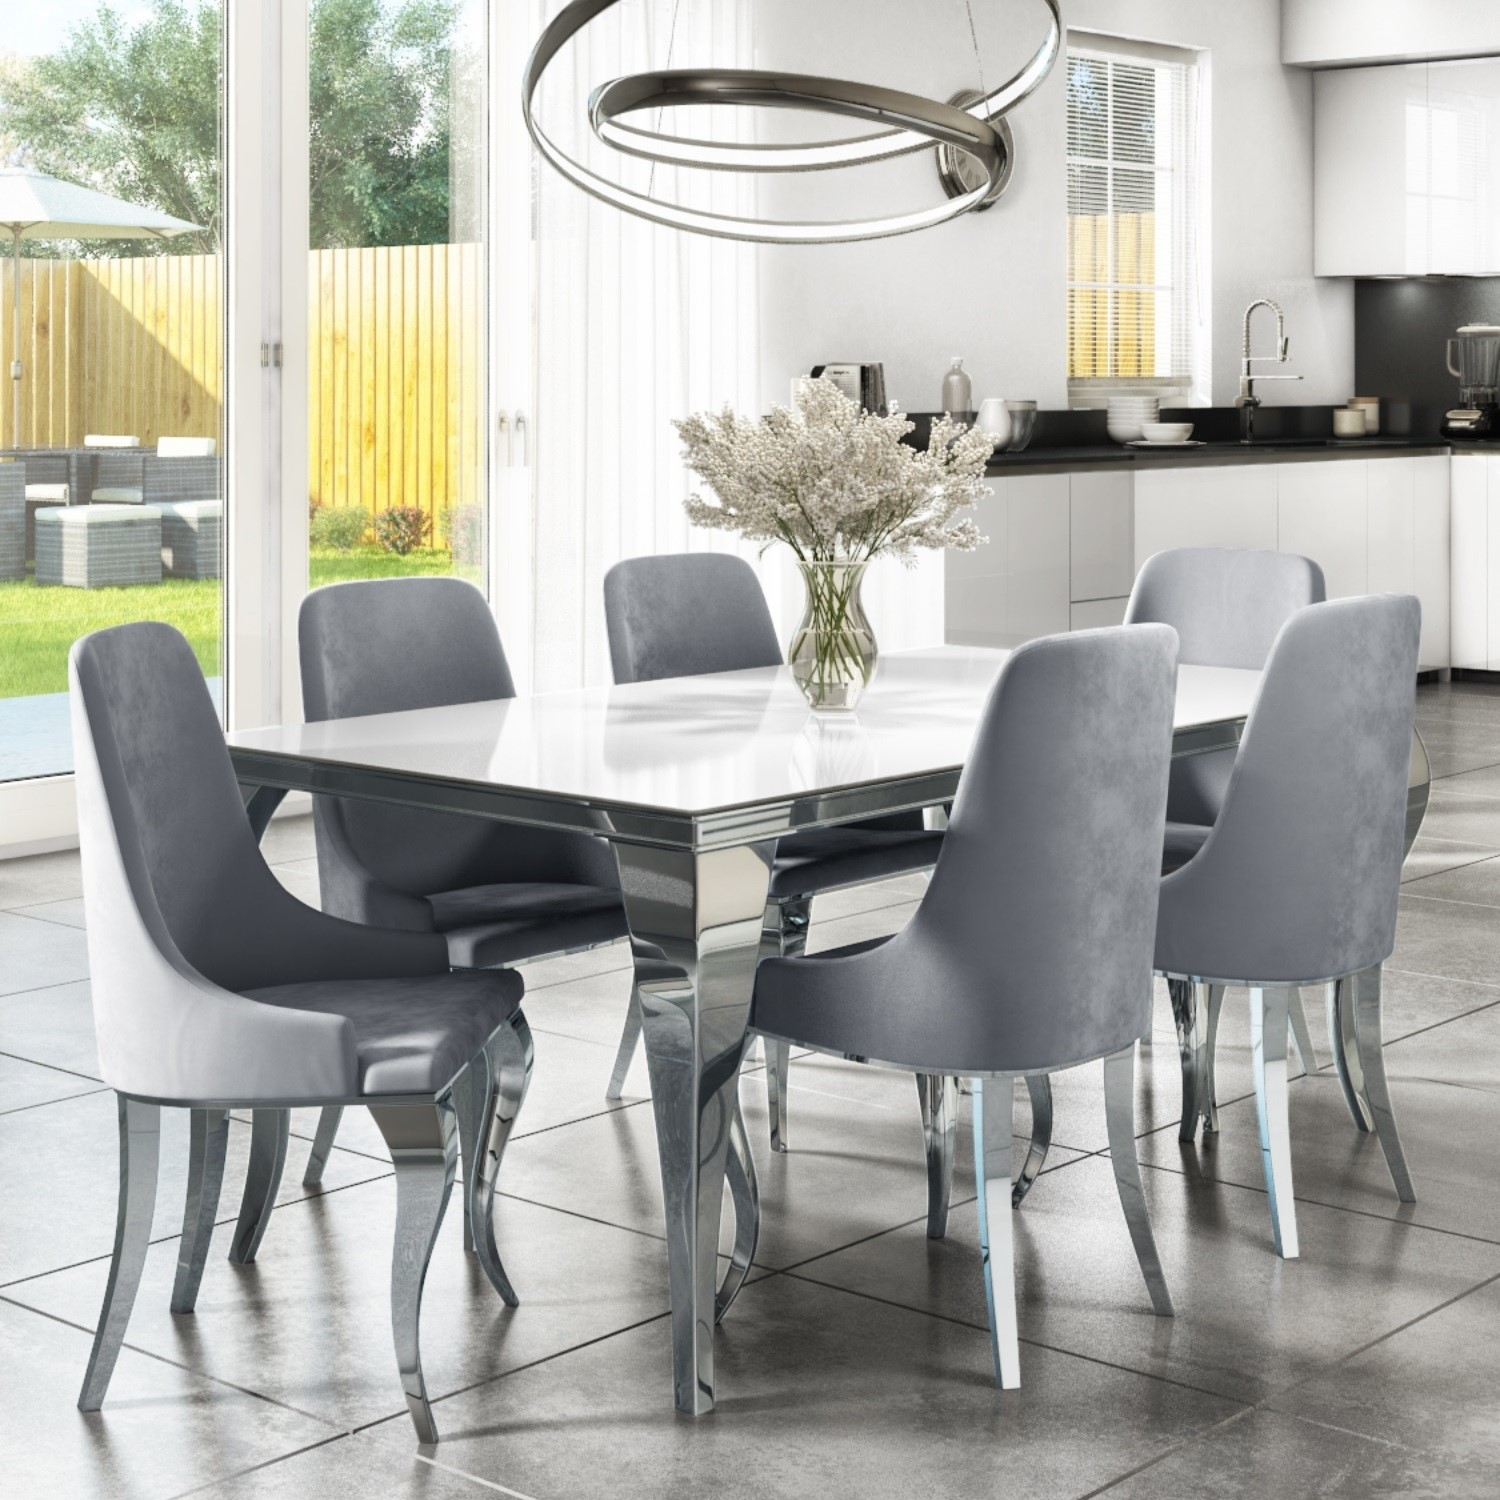 Mirrored 160cm Dining Table Set With White Glass Top 6 Grey